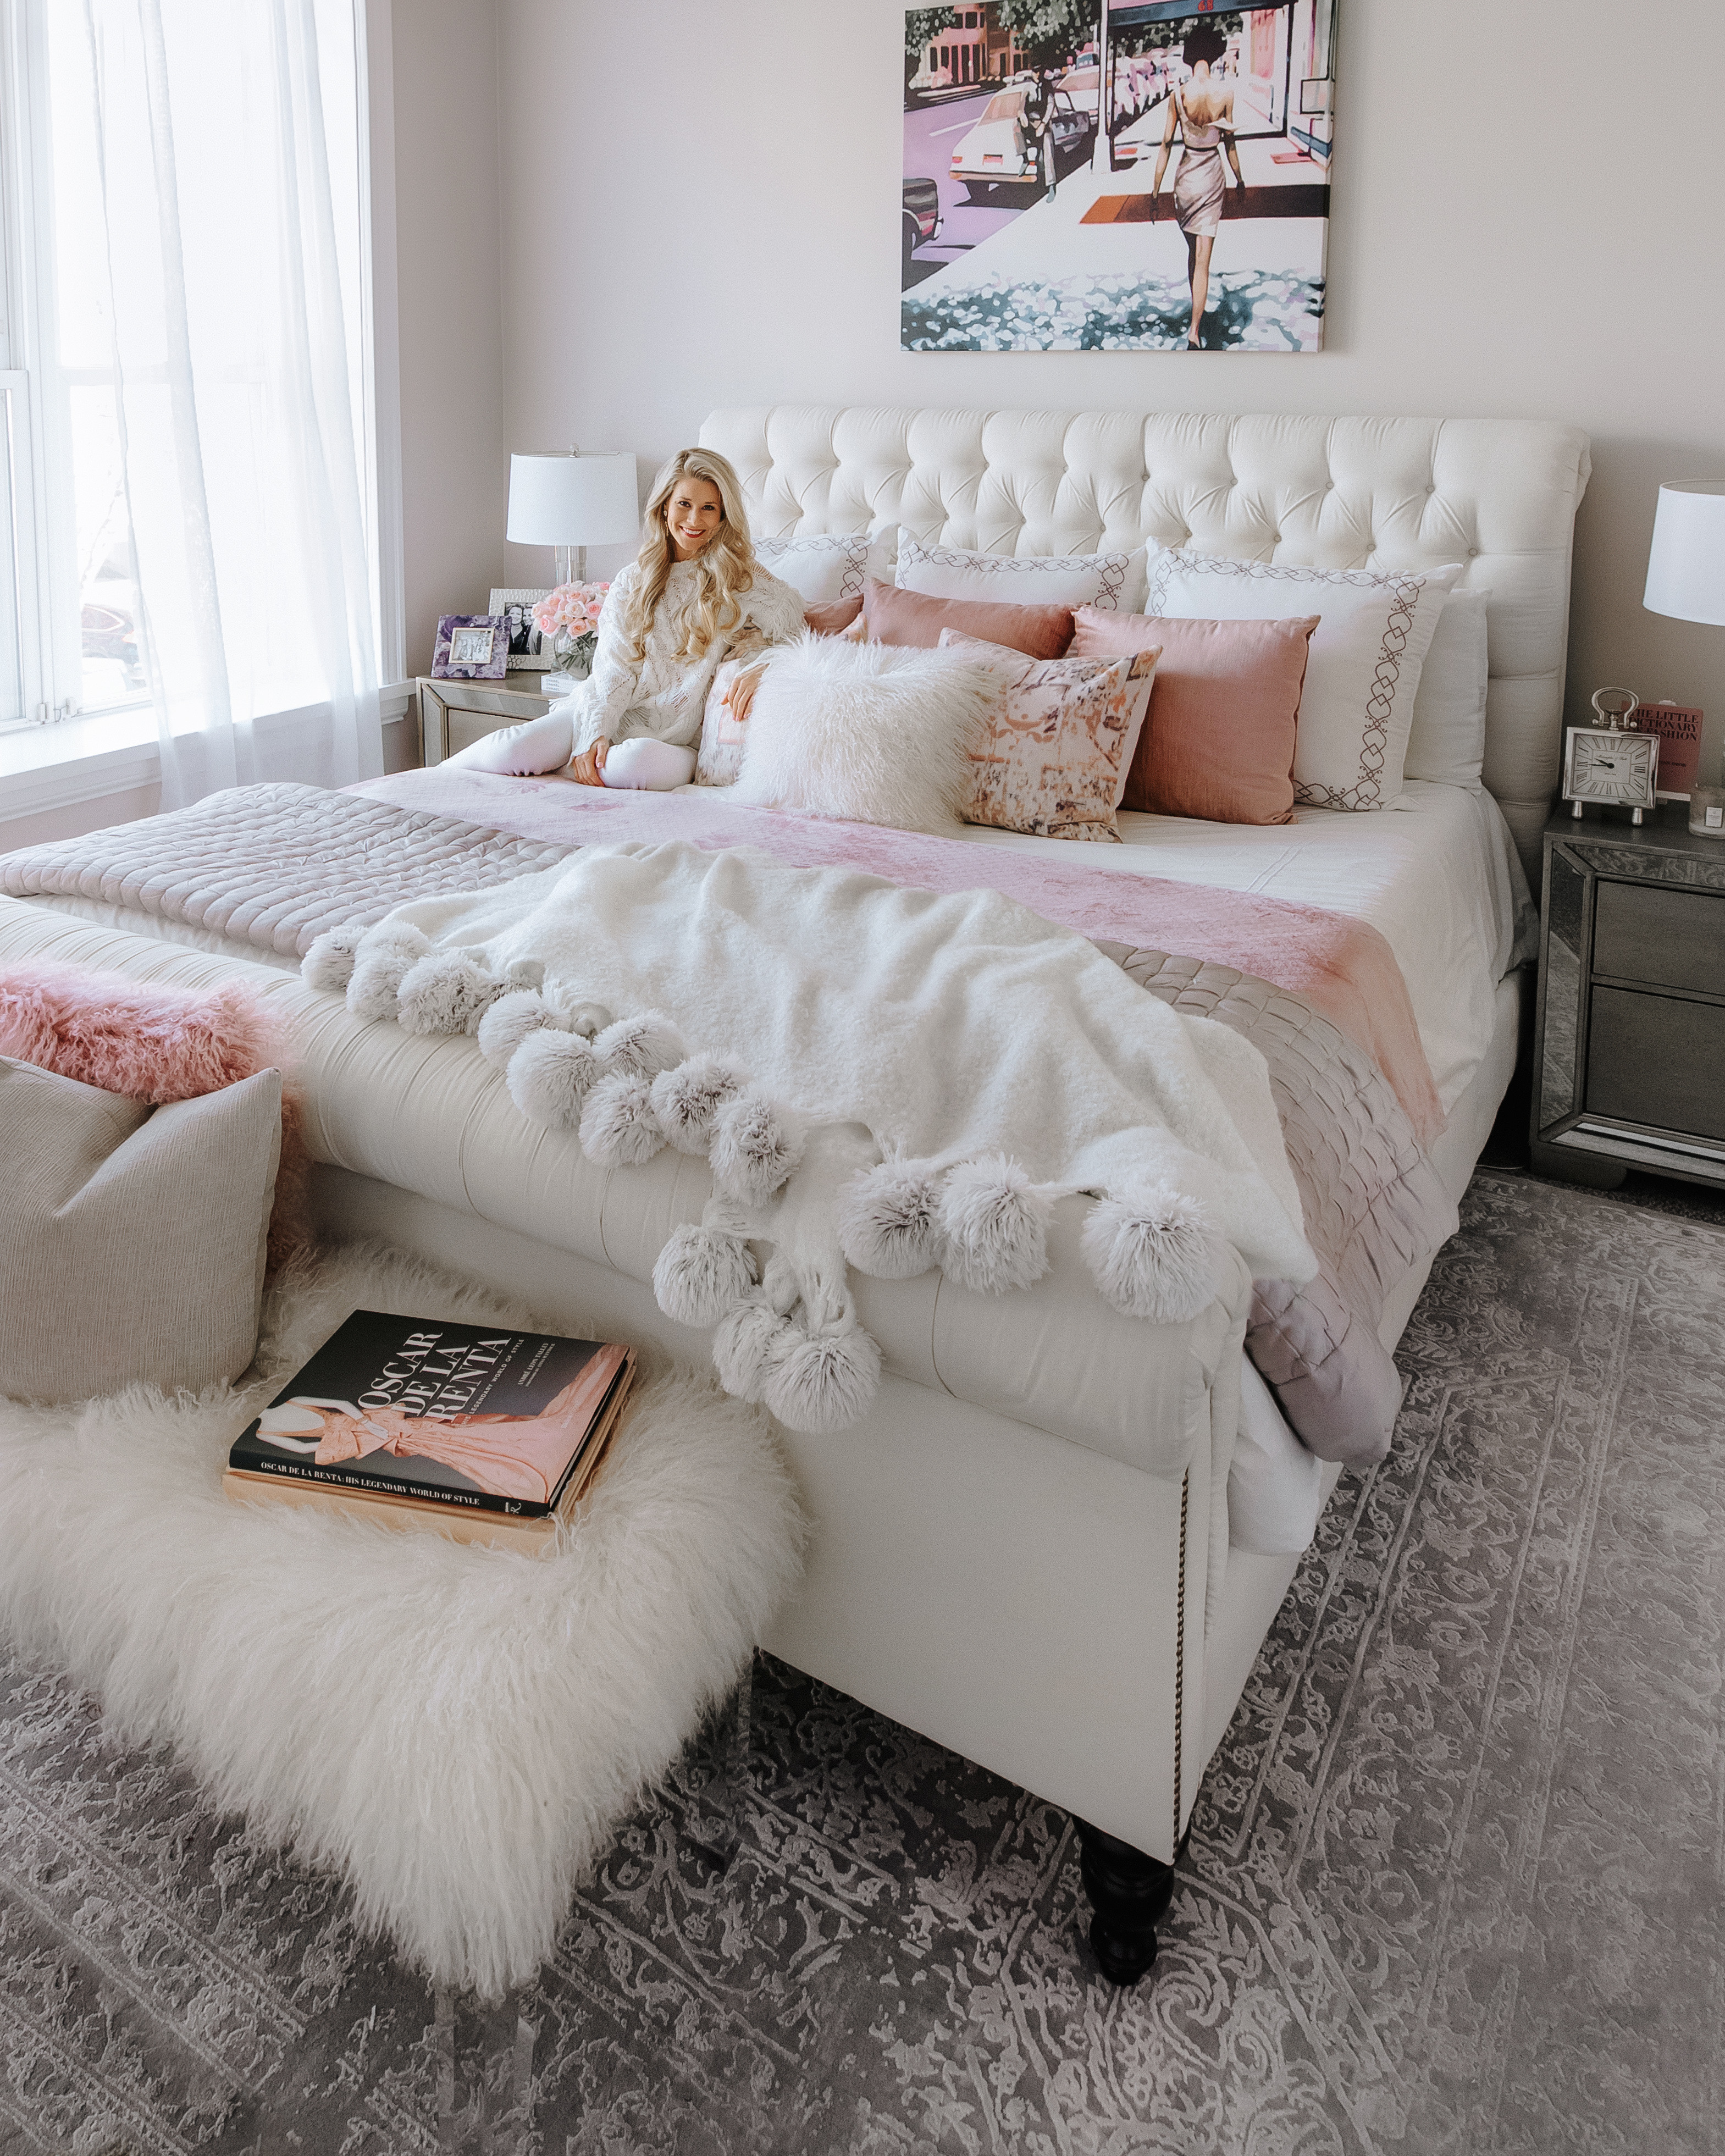 Cute Bedroom Ideas: Welcome To Olivia Rink